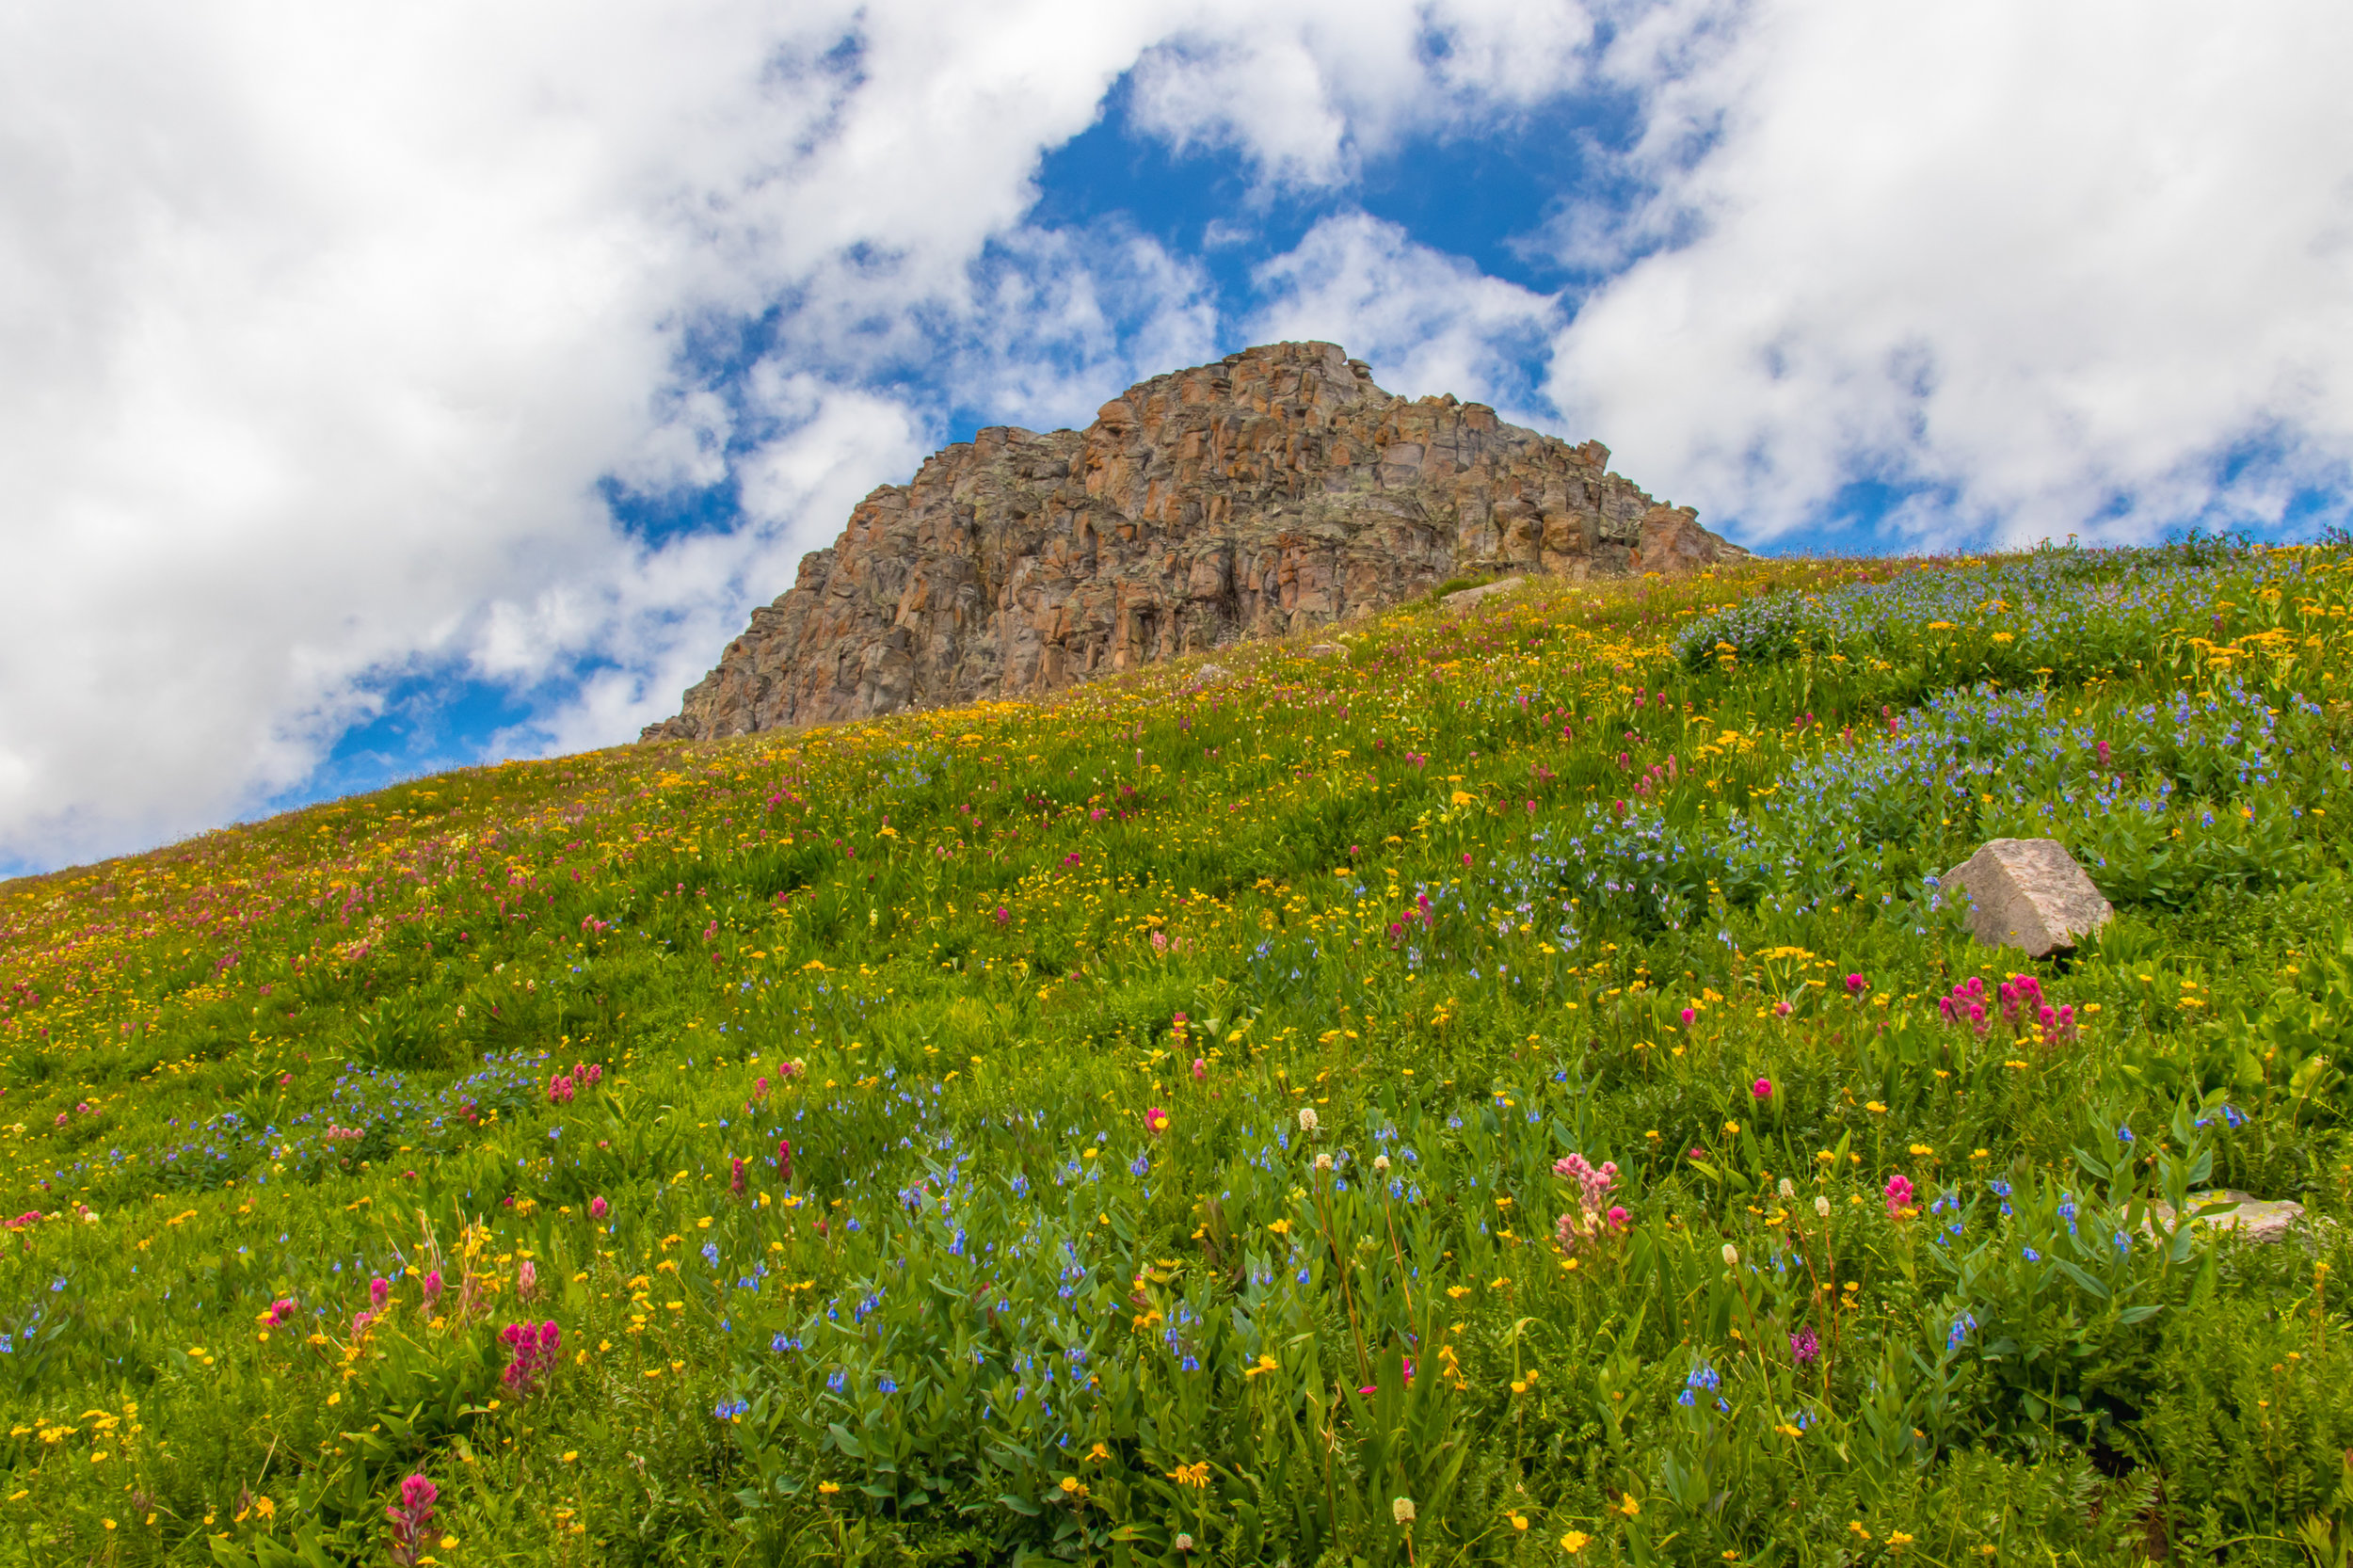 Field of Wildflowers along the route